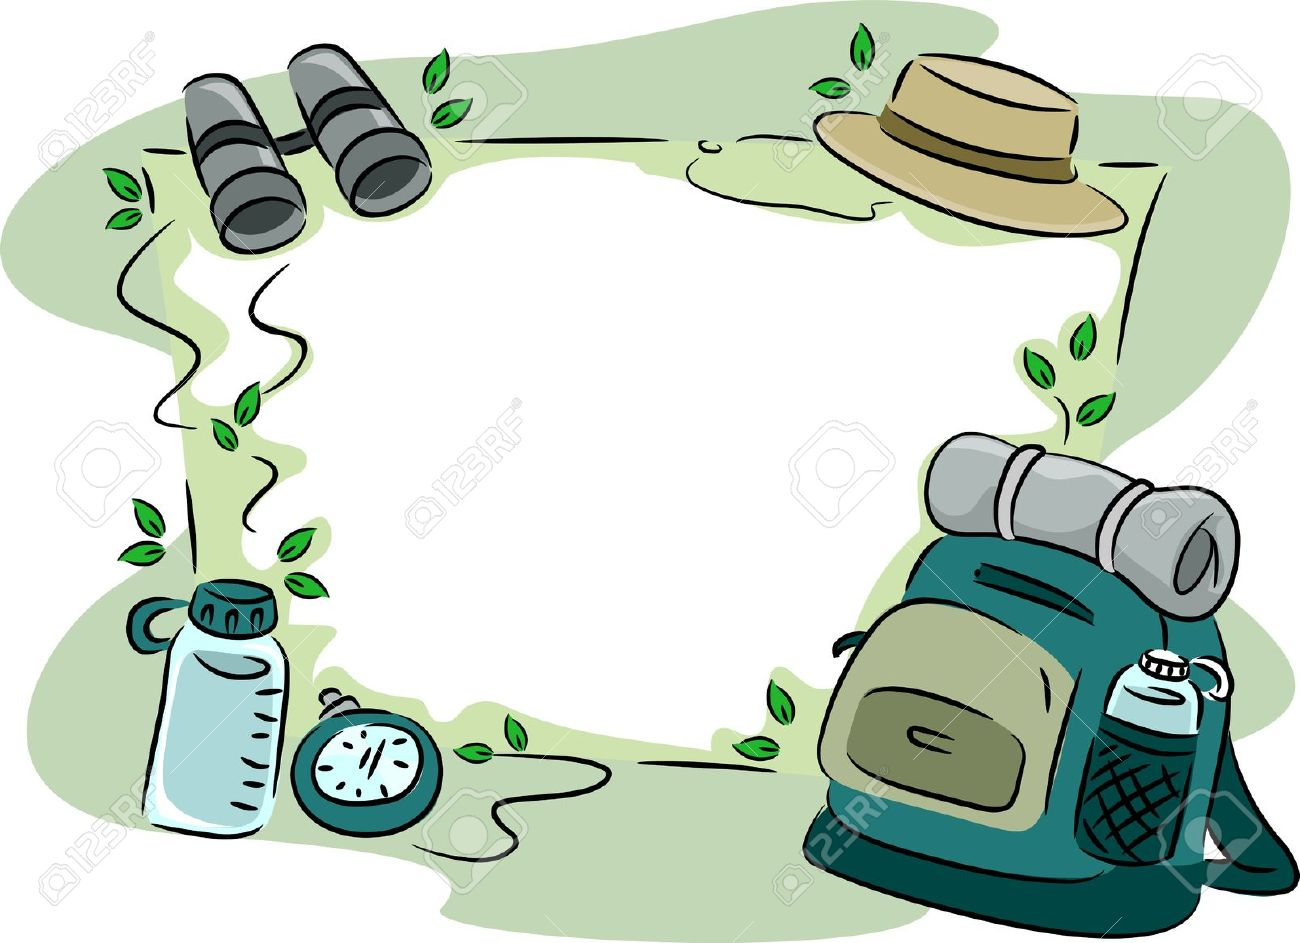 Adventure clipart background image royalty free download Adventure clipart background, Adventure background Transparent FREE ... image royalty free download